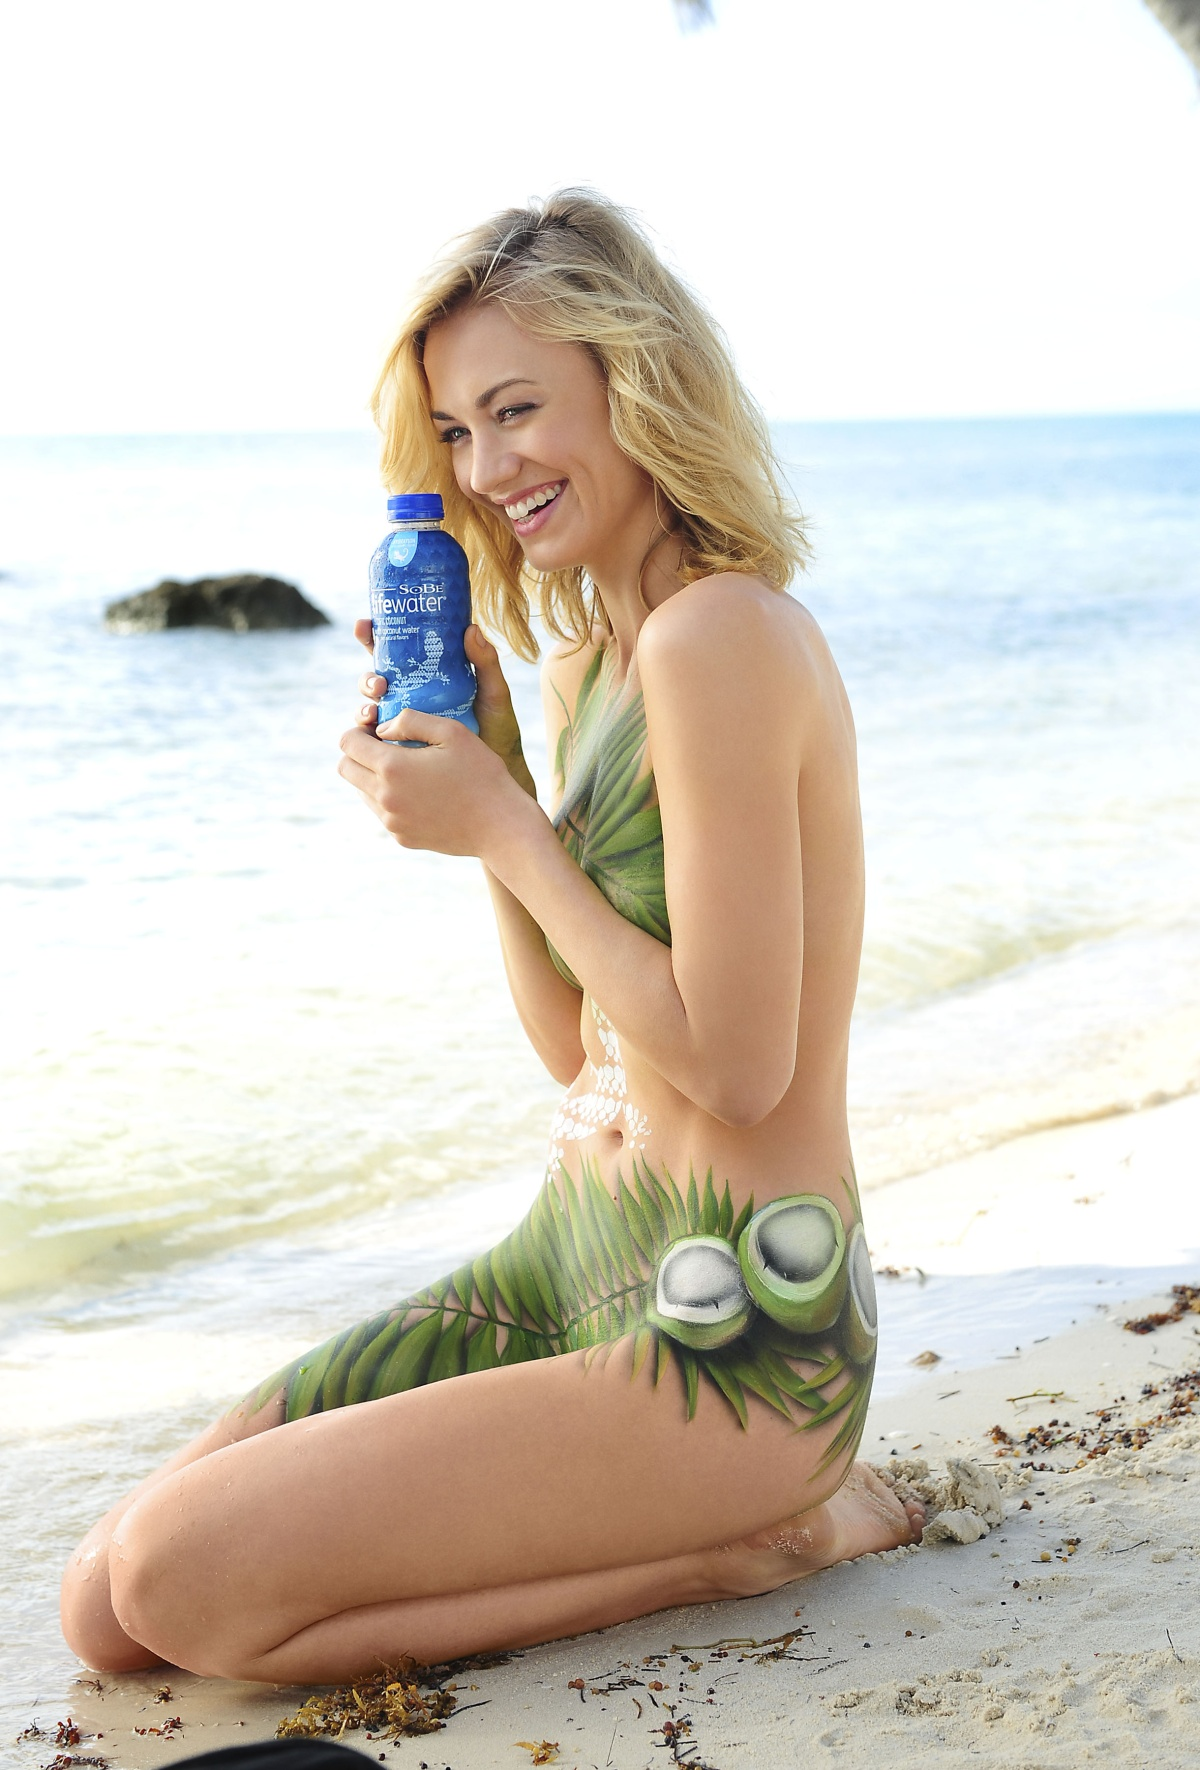 http://photovvebsite.files.wordpress.com/2012/01/yvonne-strahovski-sobe-lifewater.jpg?w=1200